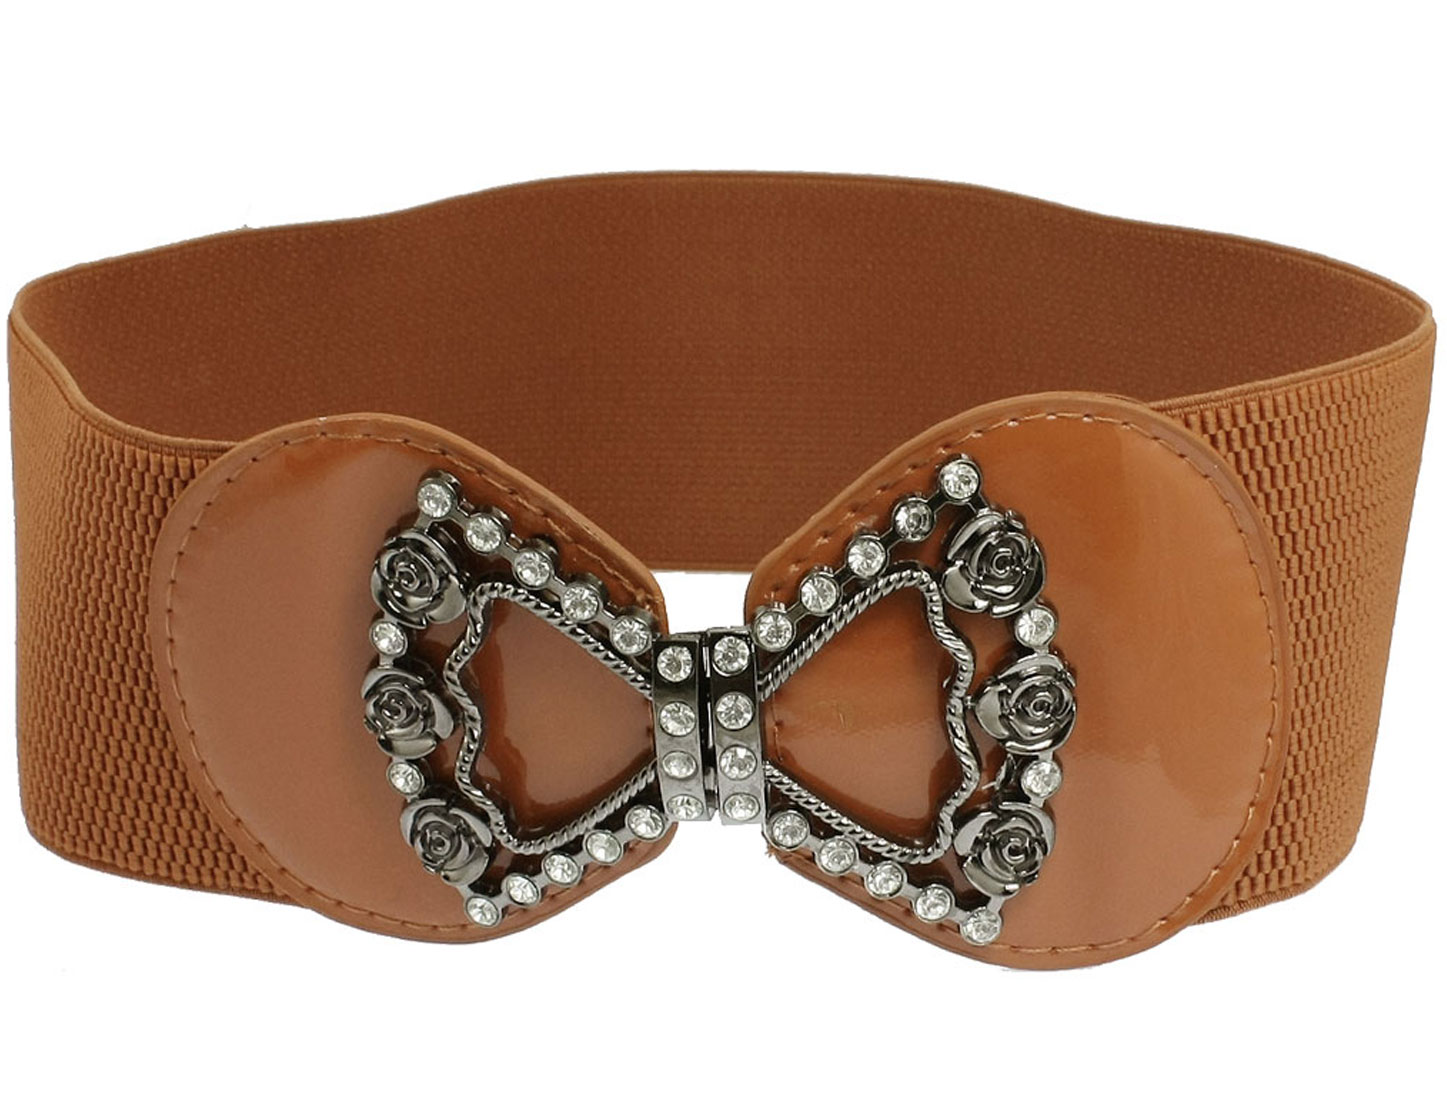 Women Bowknot Design Interlock Buckle Wide Stretch Waisband Belt Brown